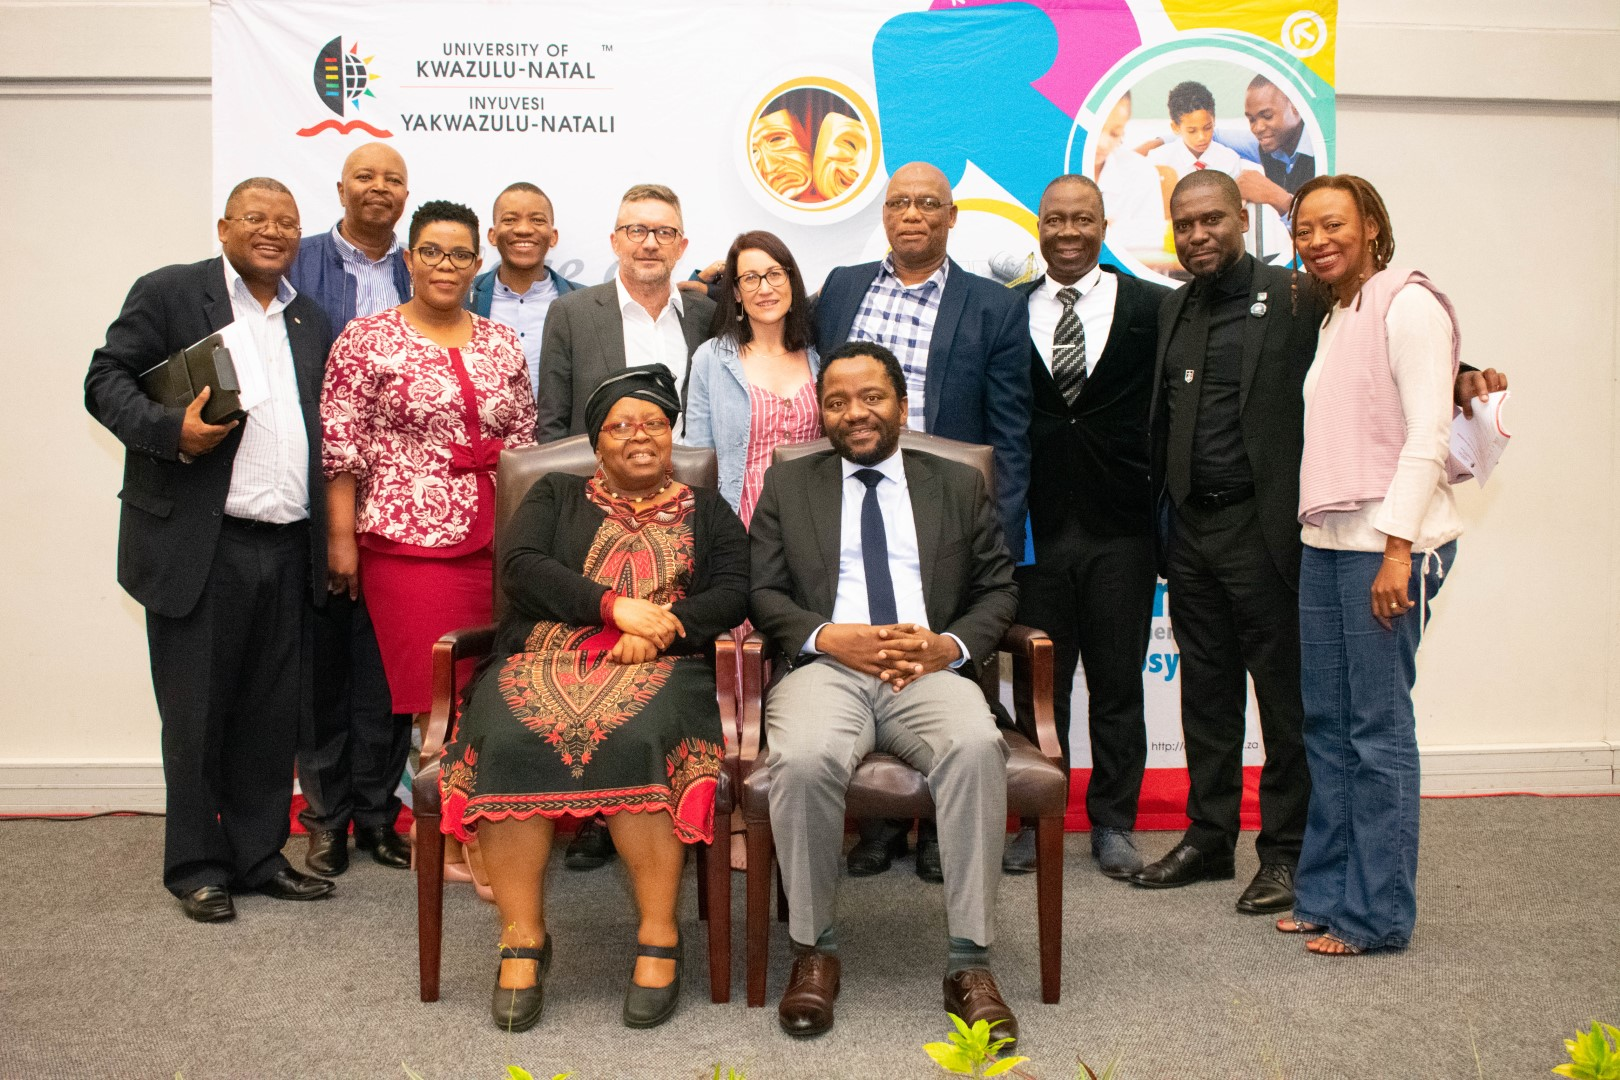 Dr Bongani Ngqulunga (seated right) with UKZN staff members at the John Dube Memorial Lecture